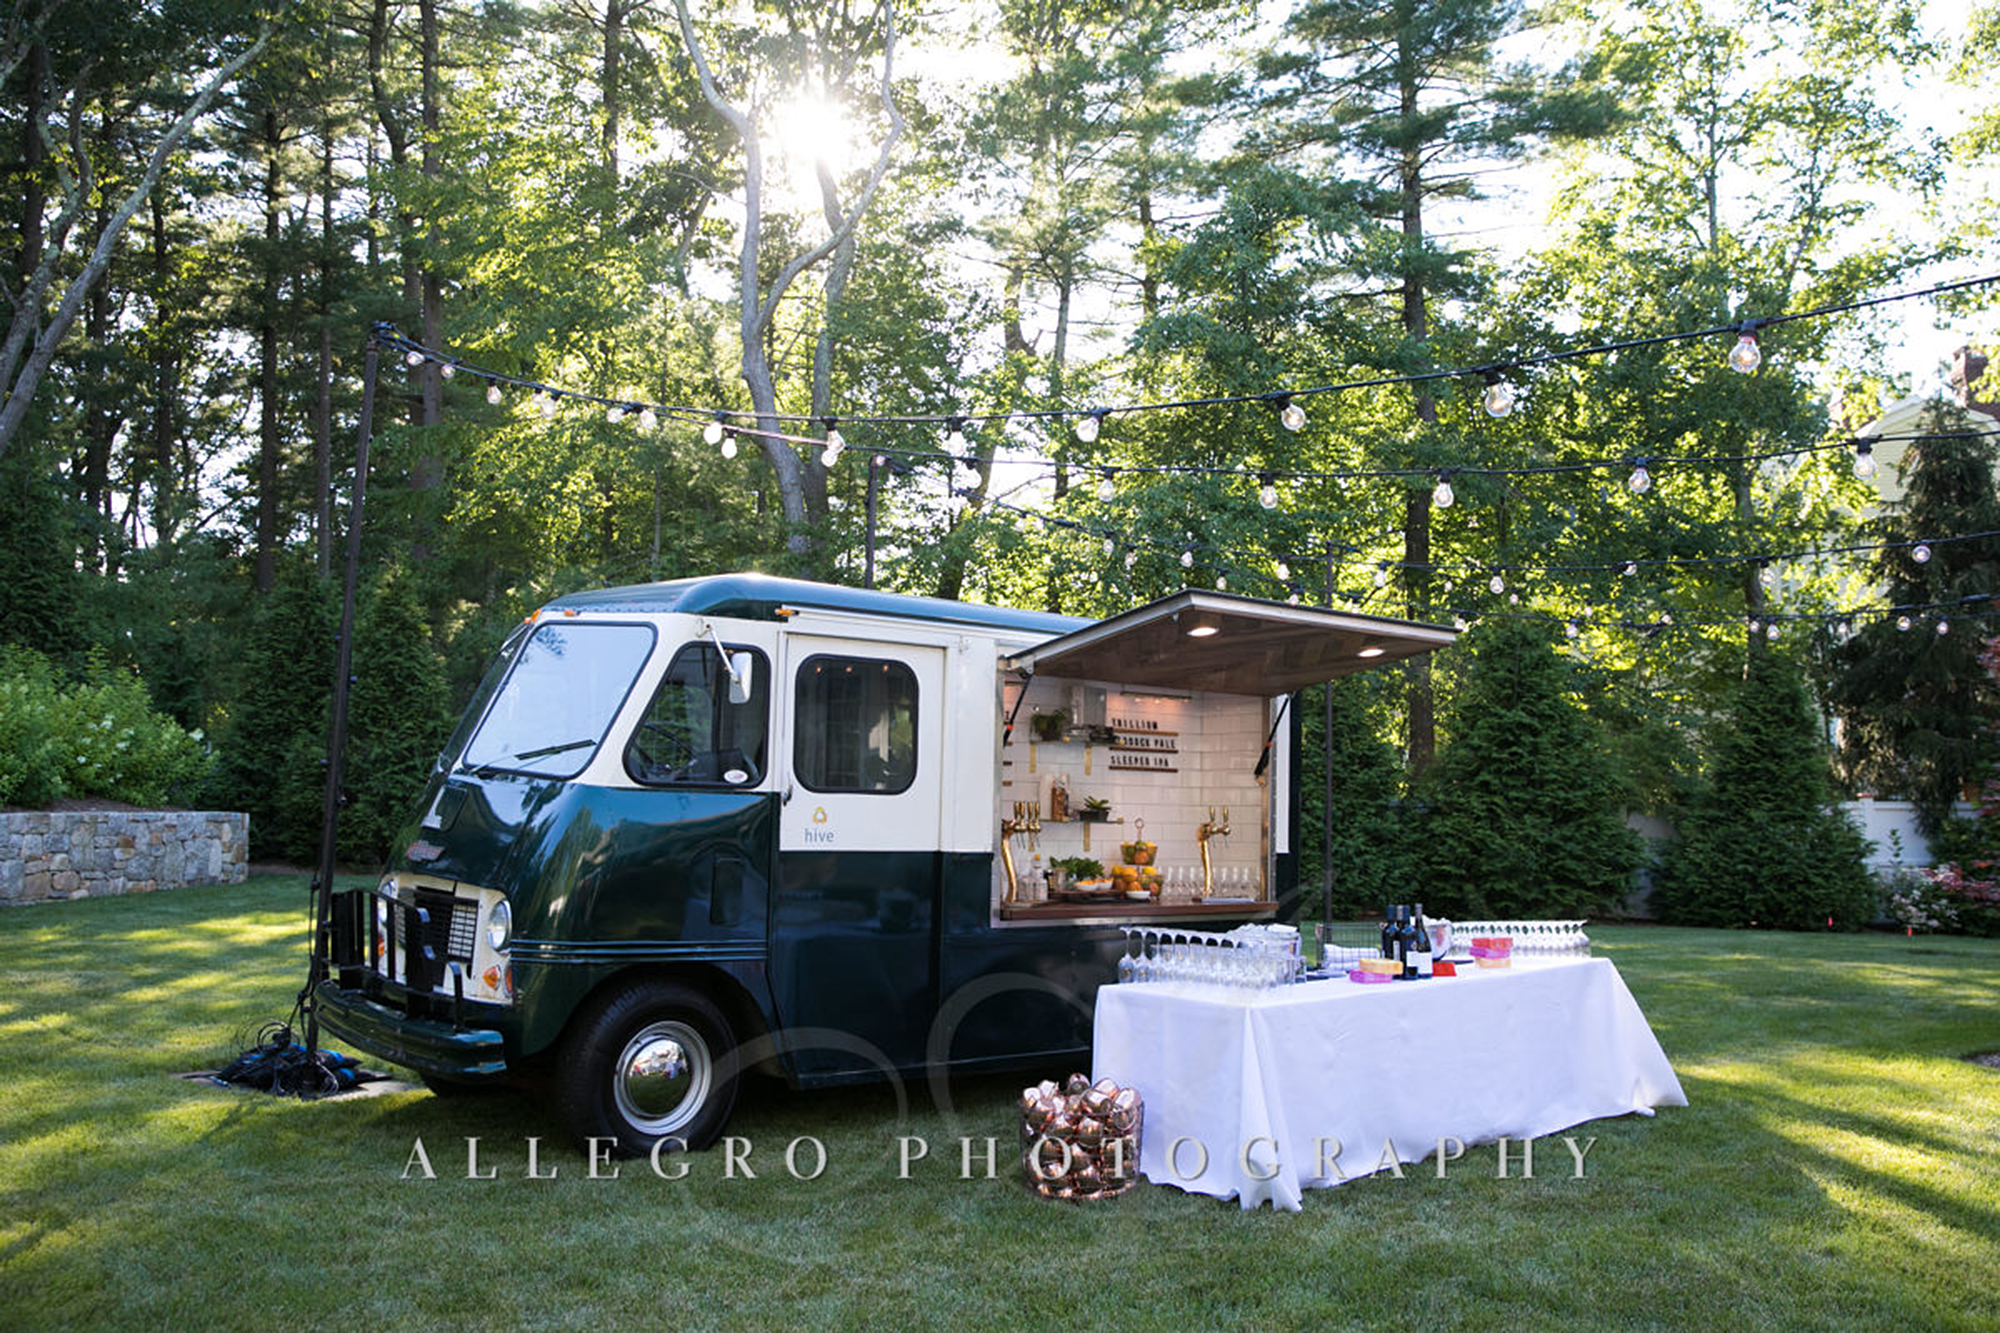 00_Private Engagement Party Backyard Bar Car_AE Events.jpg